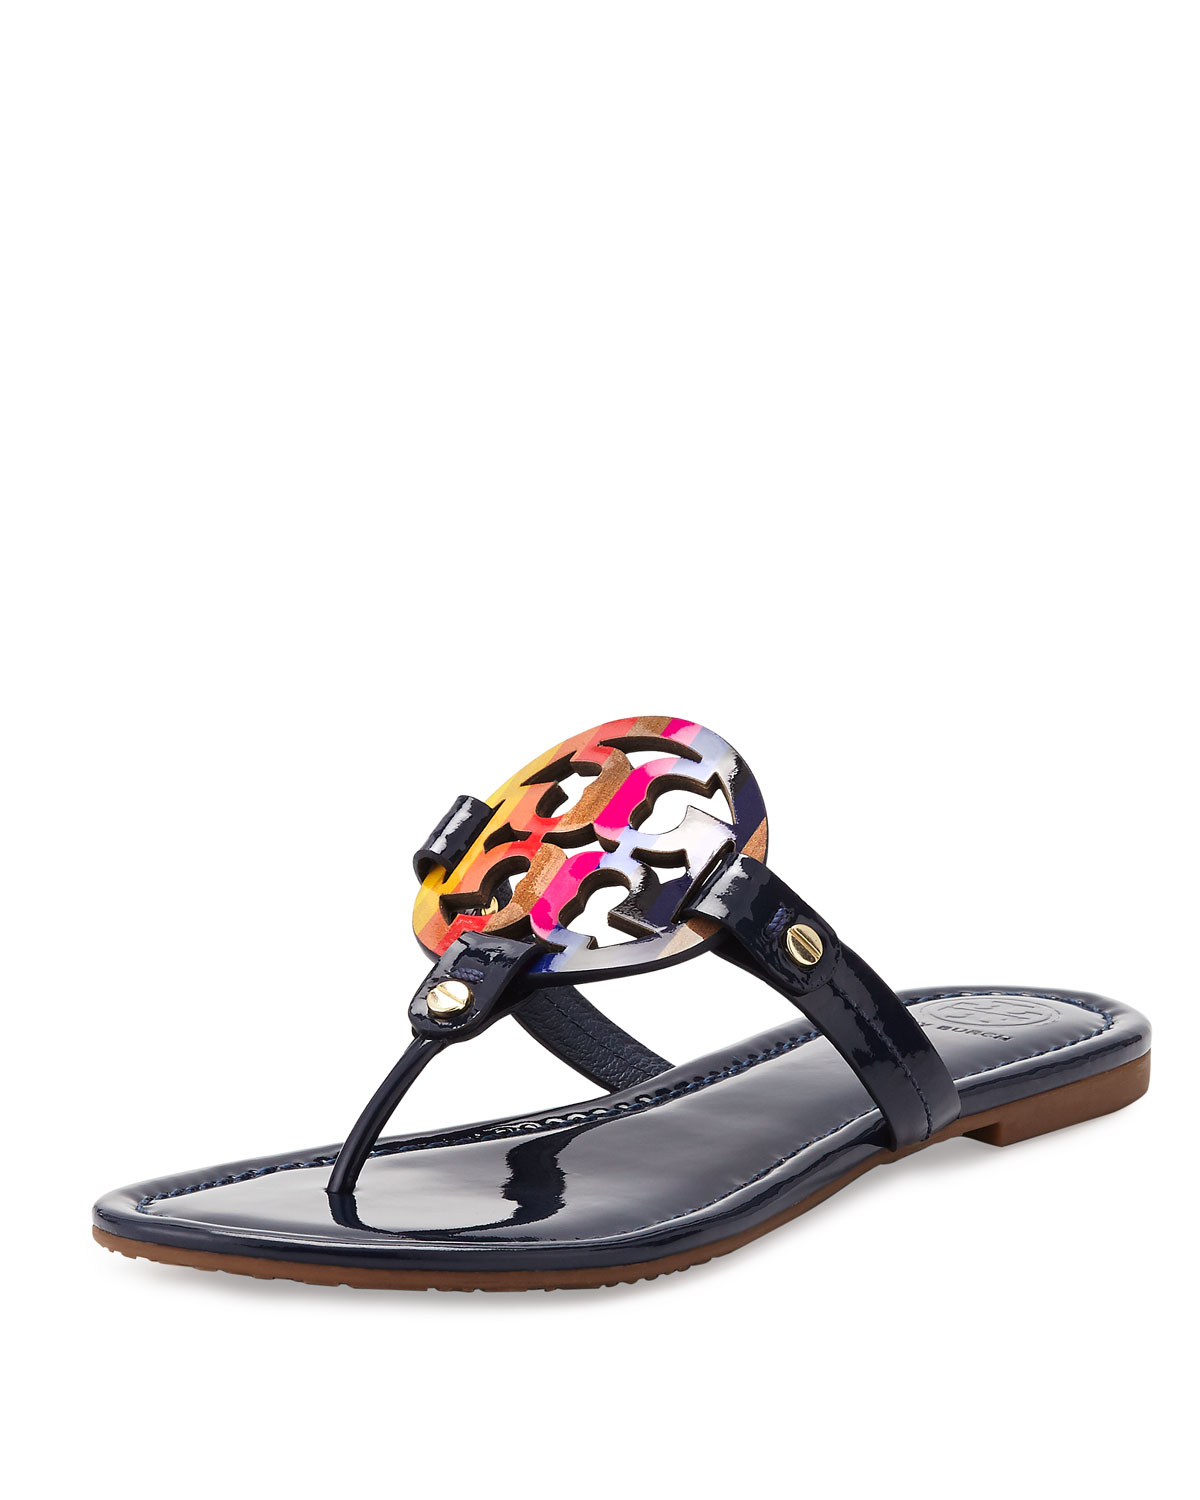 54c66c80268536 Lyst - Tory Burch Miller Rainbow Patent-Leather Logo Sandals in Black